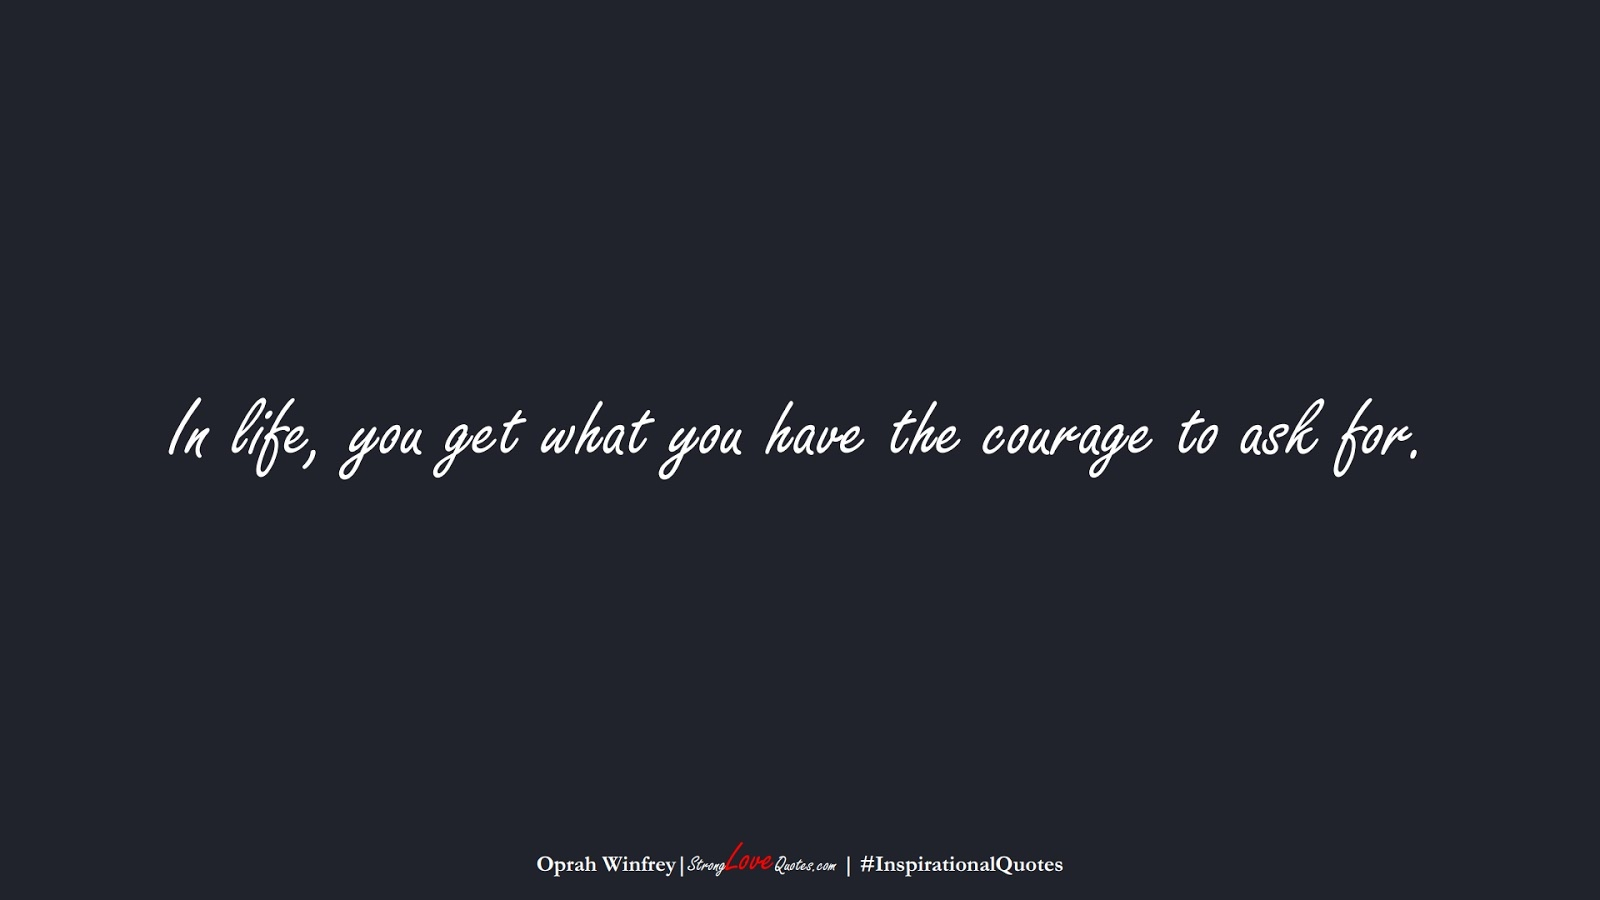 In life, you get what you have the courage to ask for. (Oprah Winfrey);  #InspirationalQuotes